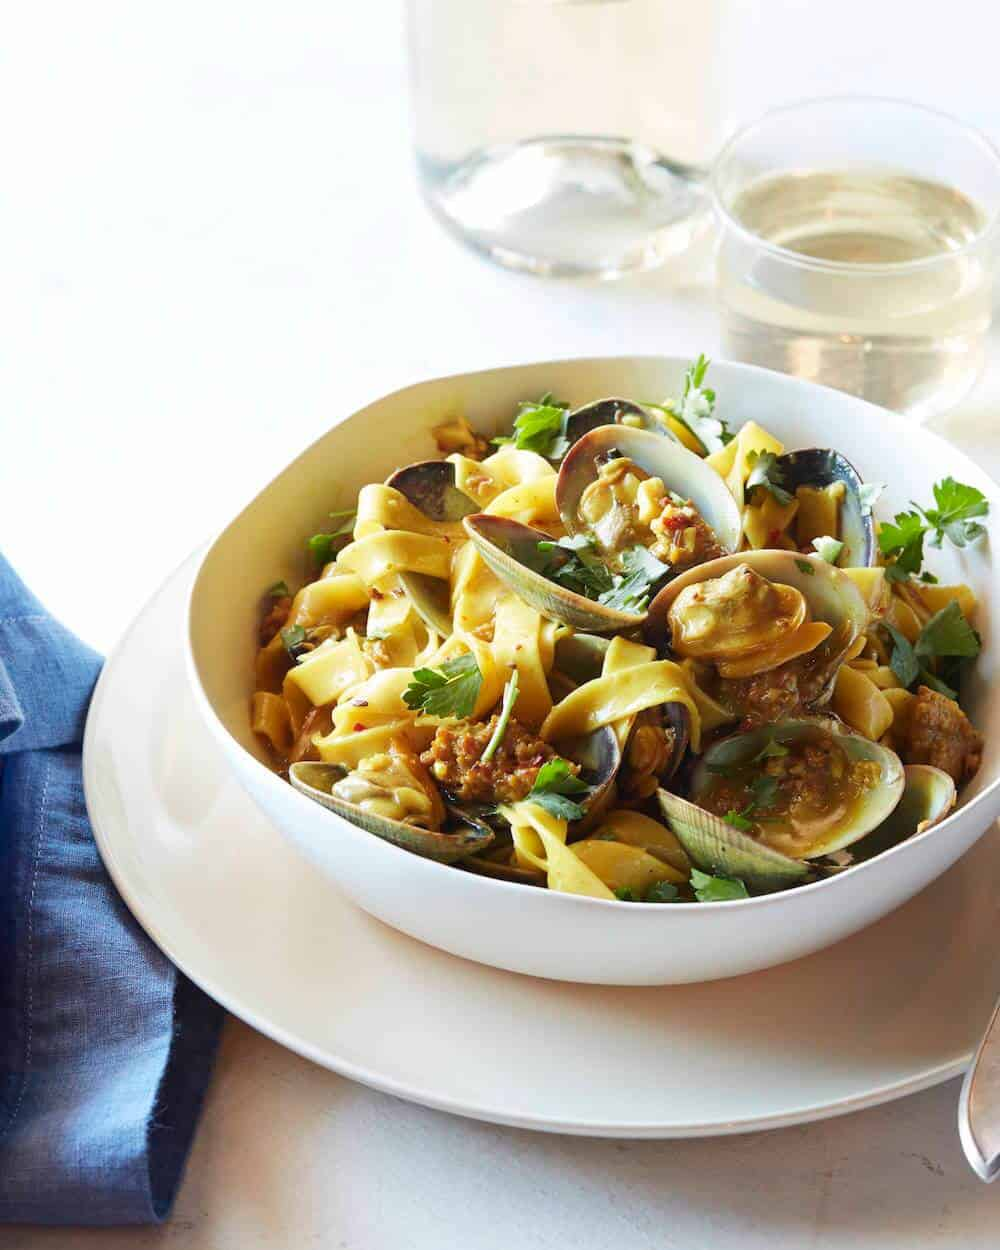 Fresh Egg Fettuccine with Manila Clams, Spicy Sausage and White Wine Saffron Reduction